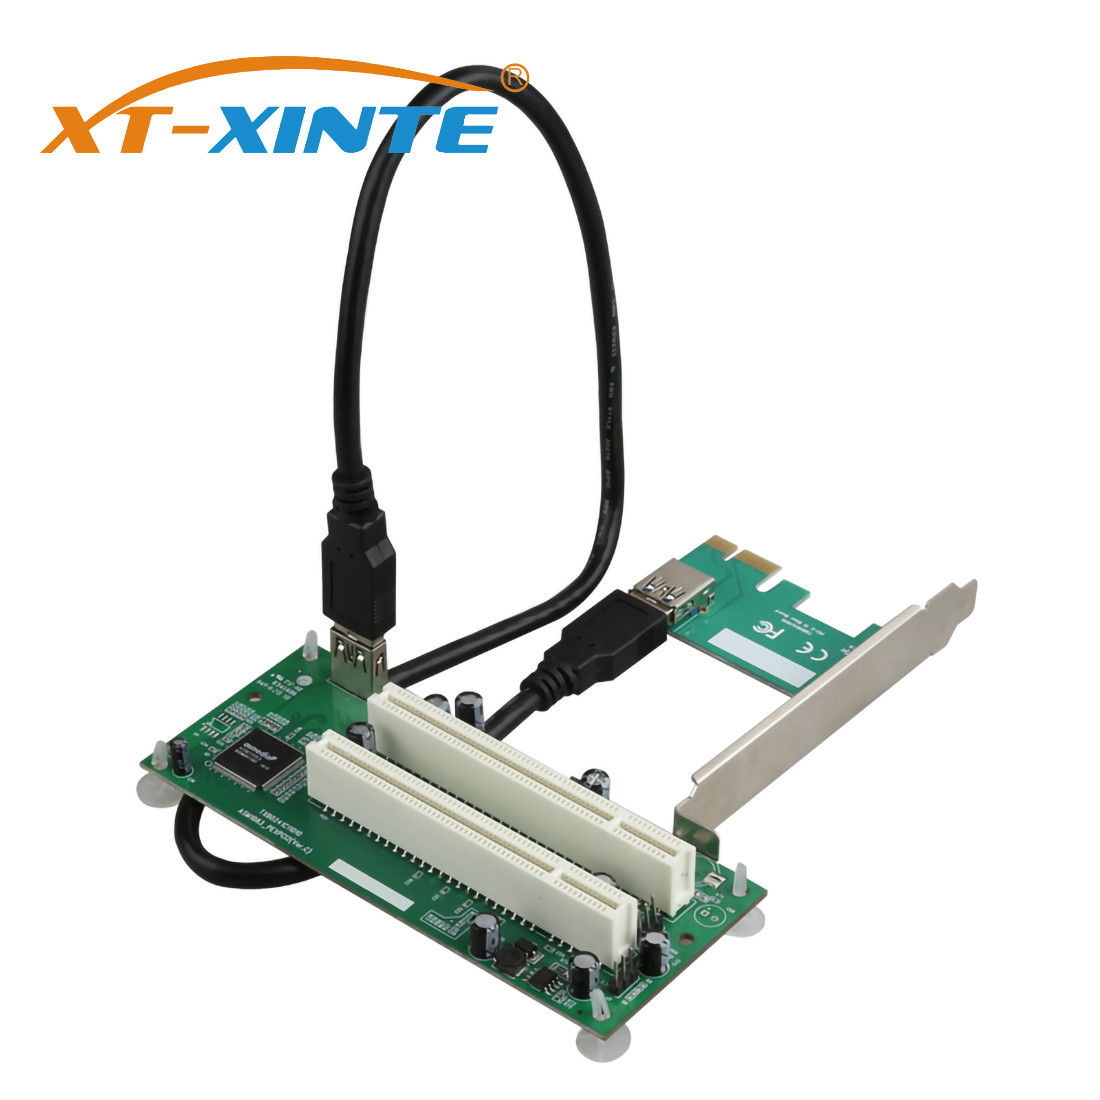 XT-XINTE PCI Express PCI-e to Dual PCI Adapter Card PCIE PCI Slot Expansion Riser Card USB 3.0 Add on Cards Converter